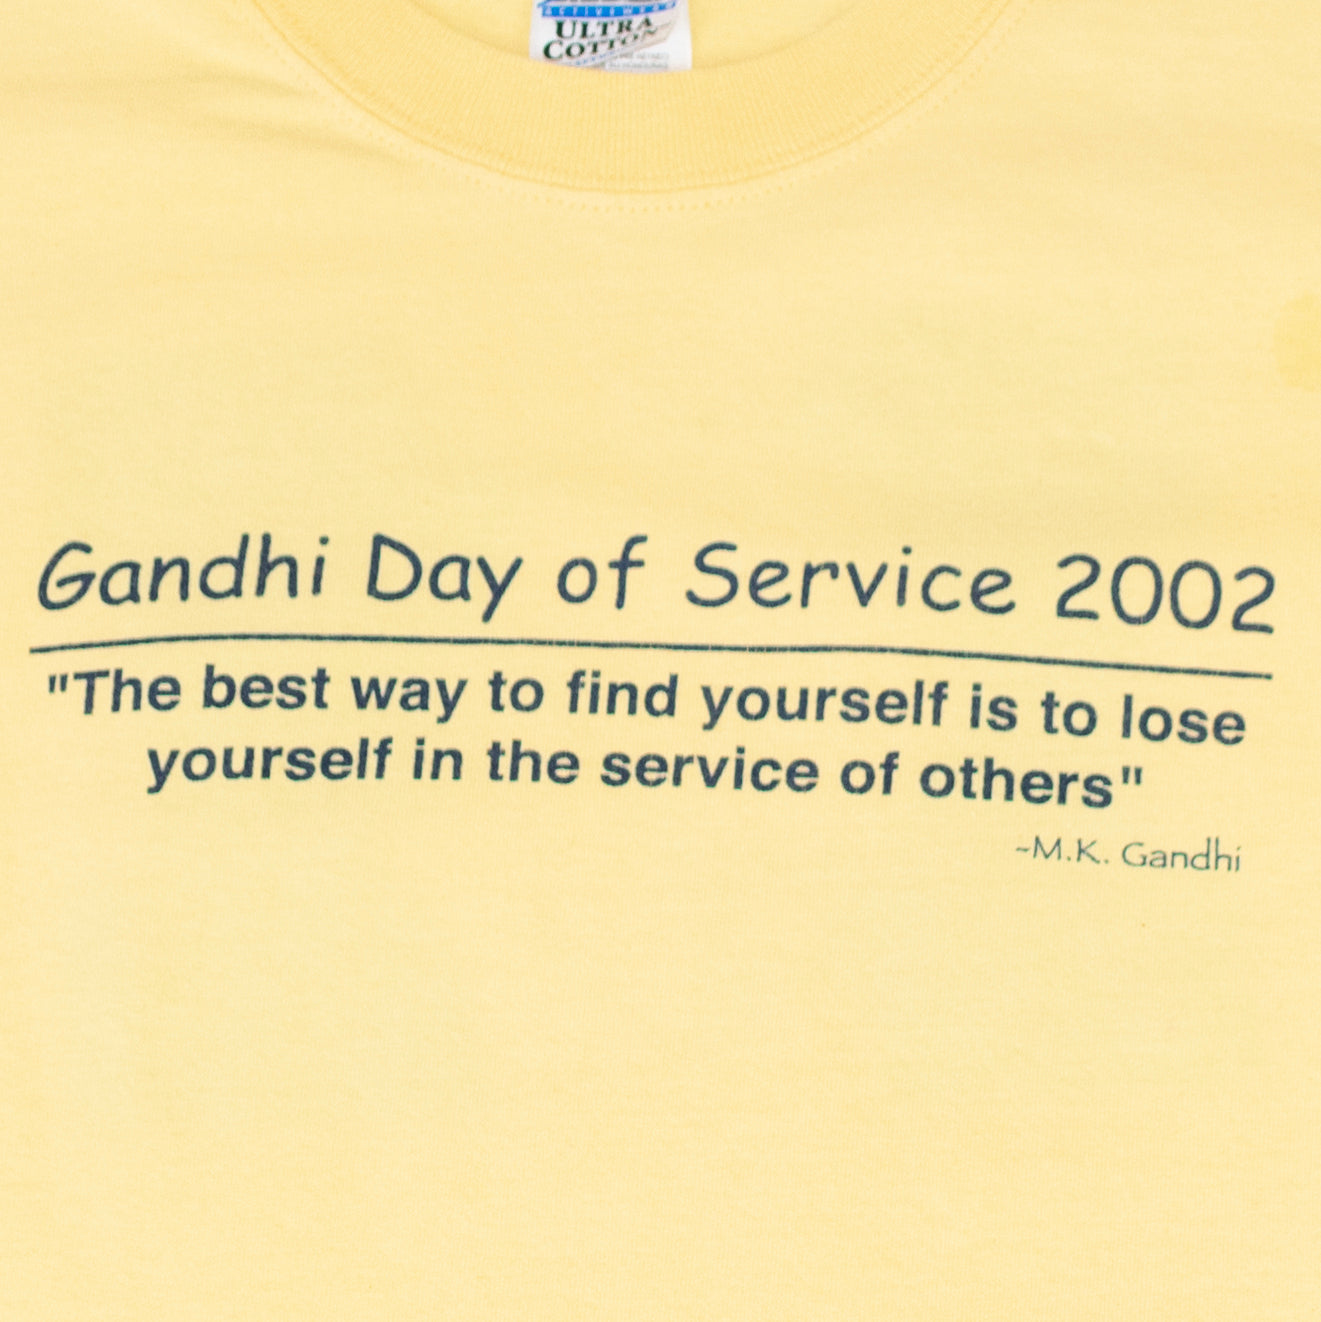 2002 Gandhi Day Of Service T-Shirt